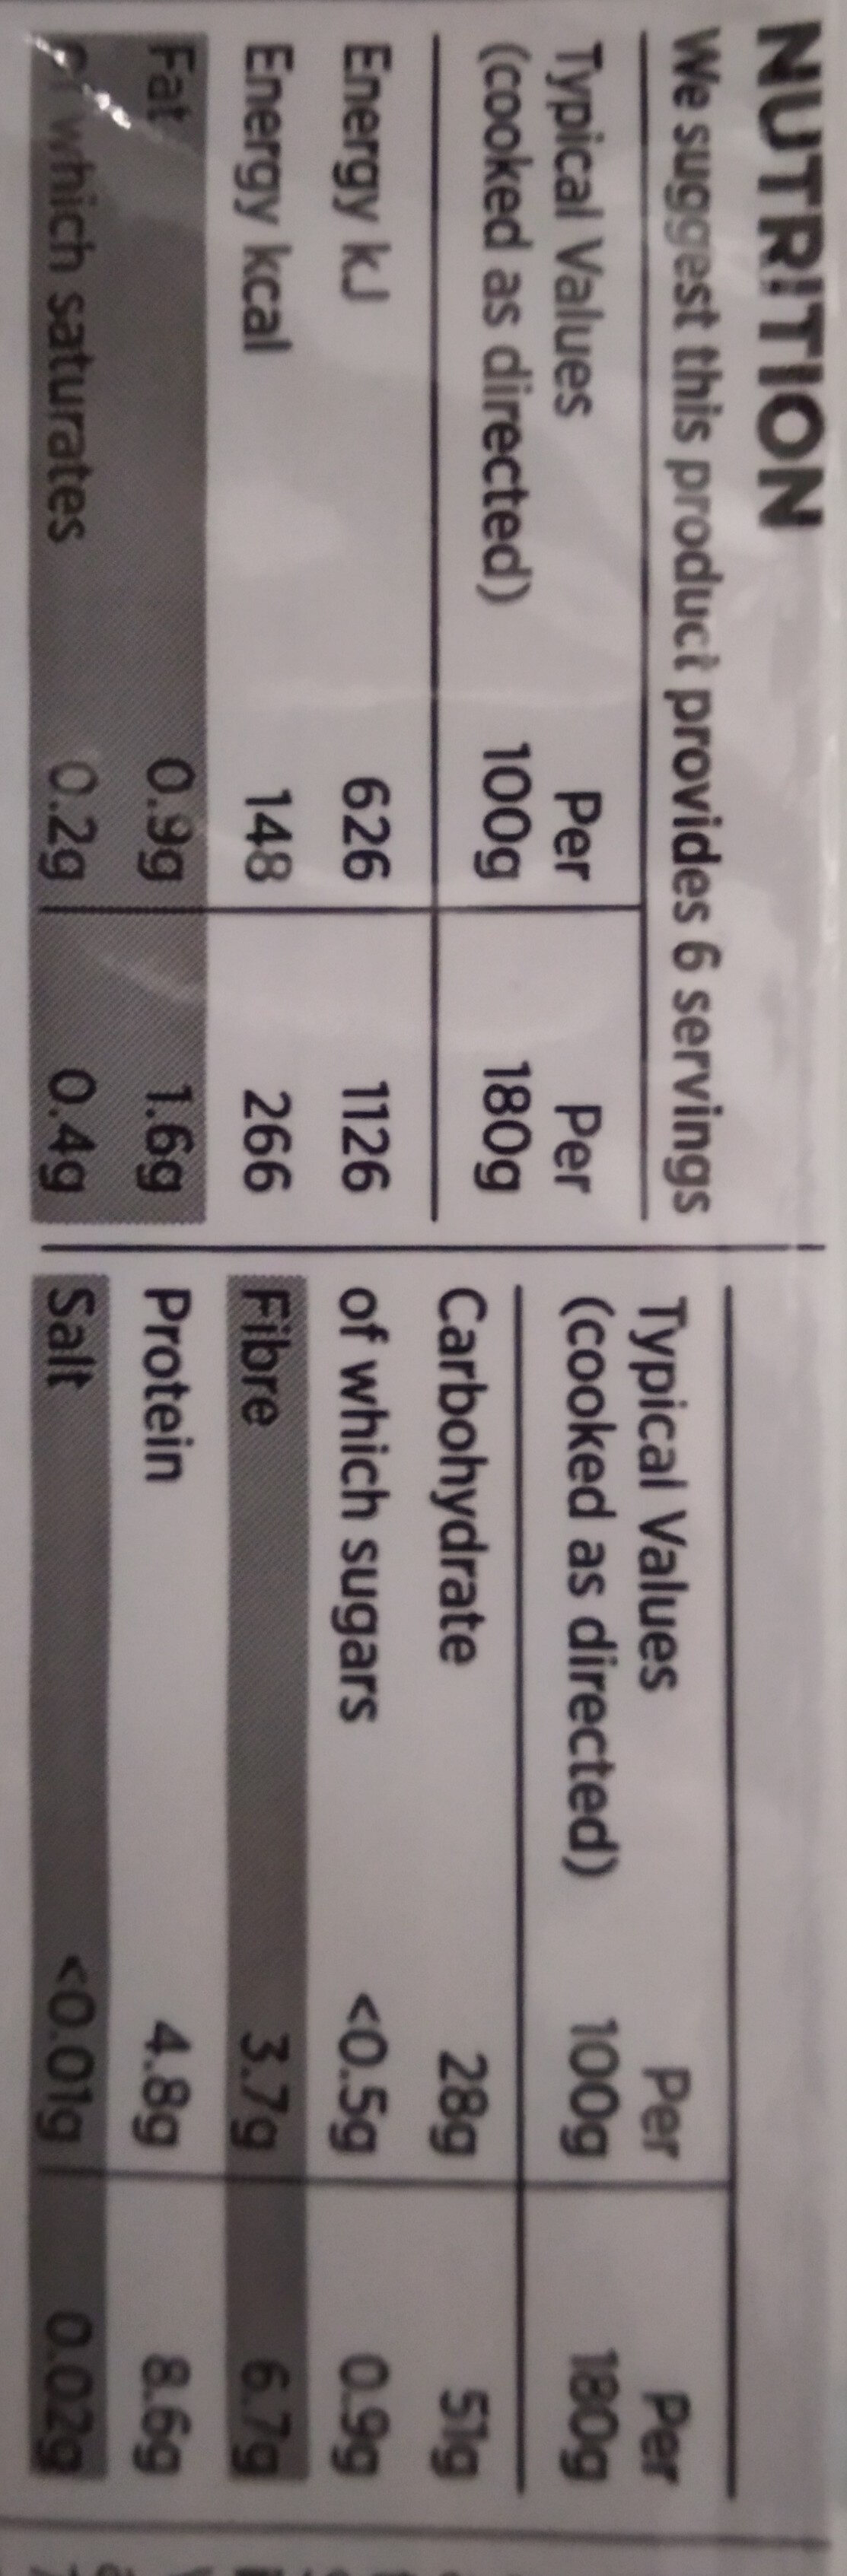 Wholewheat spaghetti - Nutrition facts